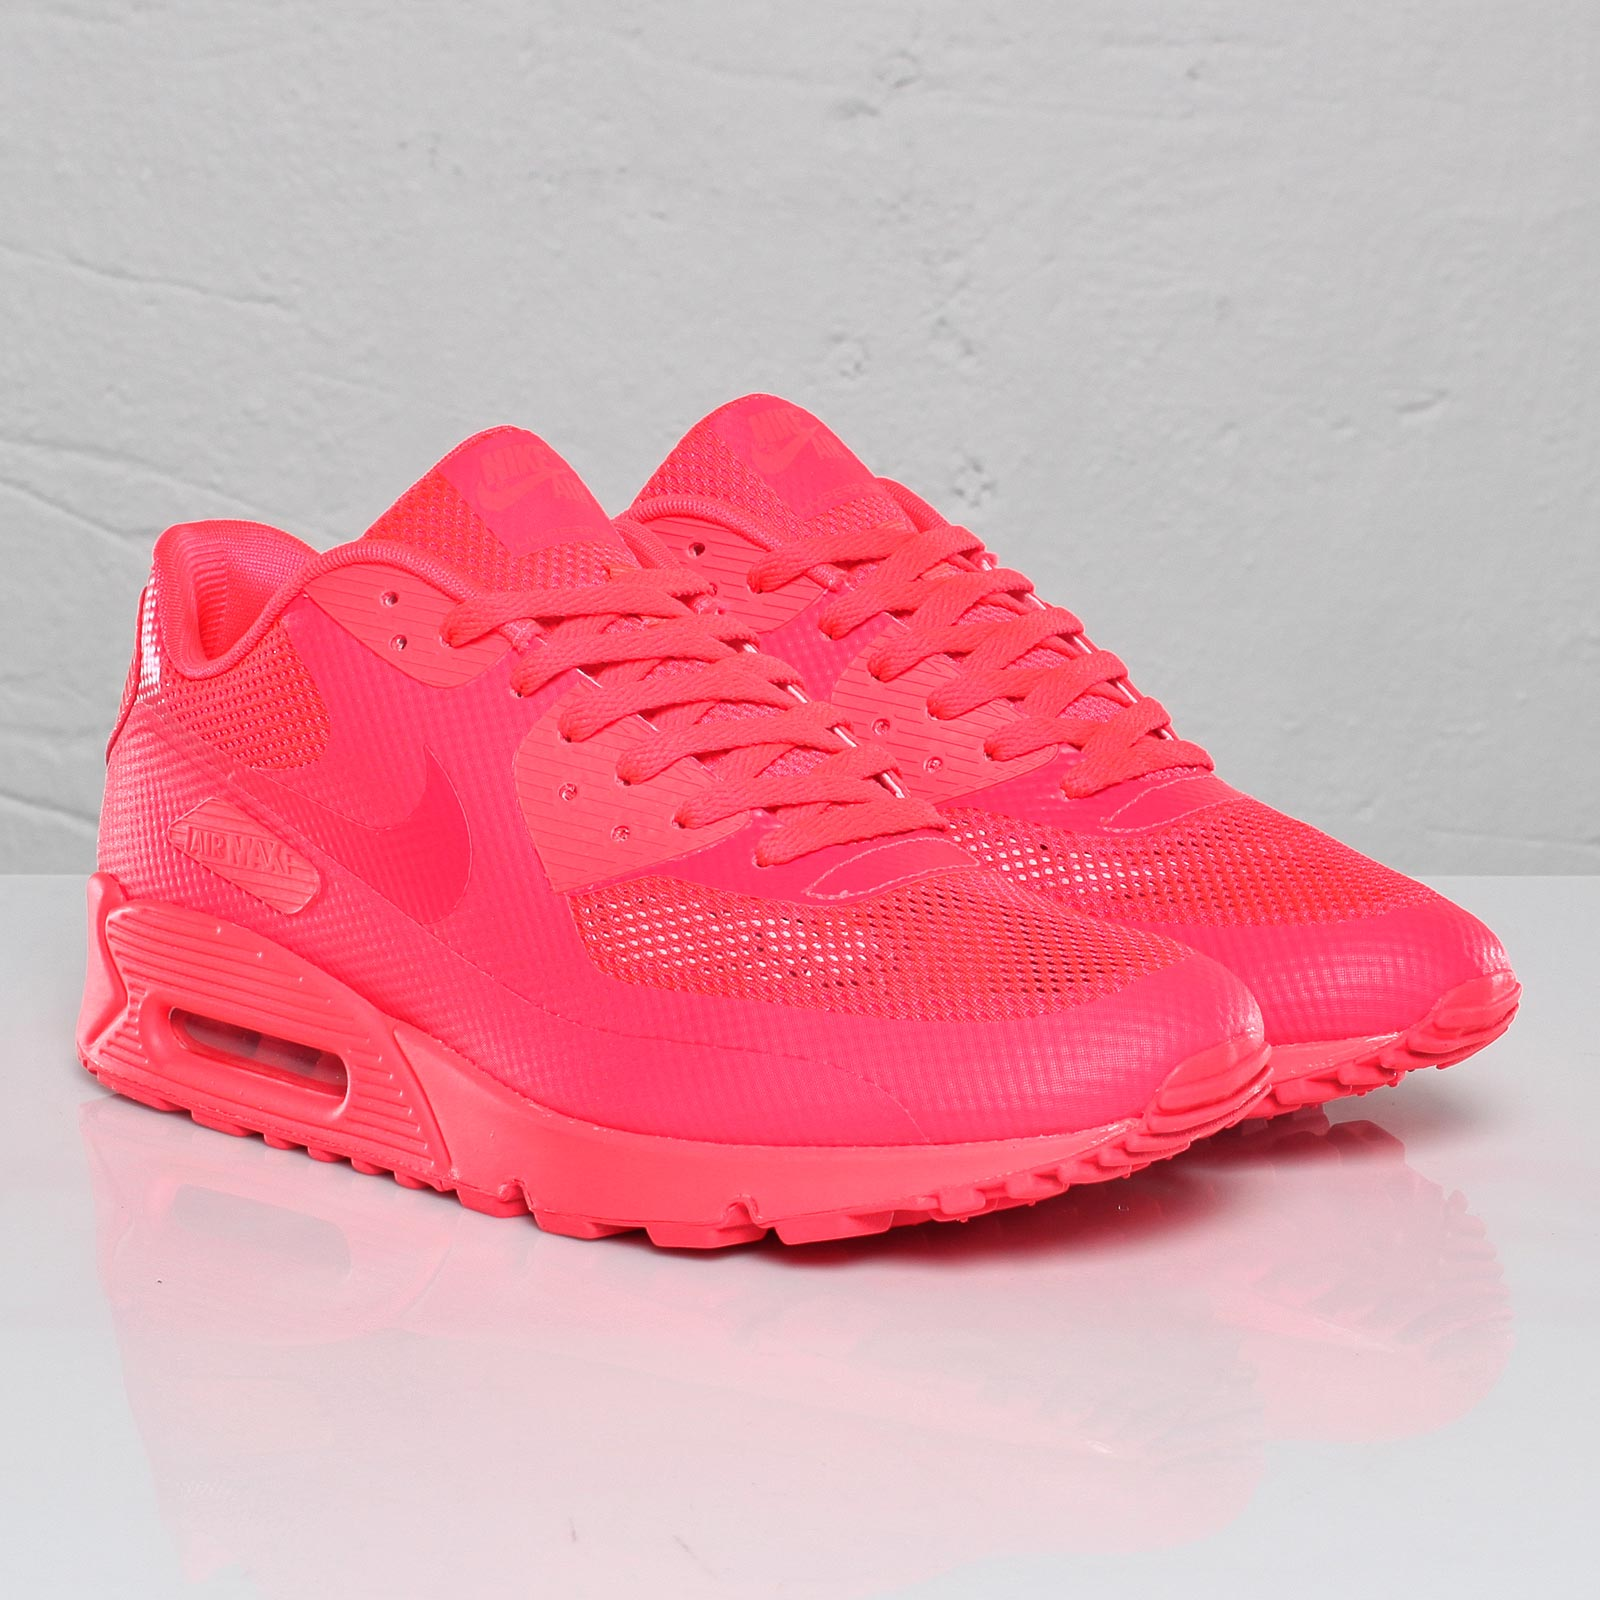 taille 40 fbe4d 33313 Nike Air Max 90 Hyp Prm - 101888 - Sneakersnstuff | sneakers ...